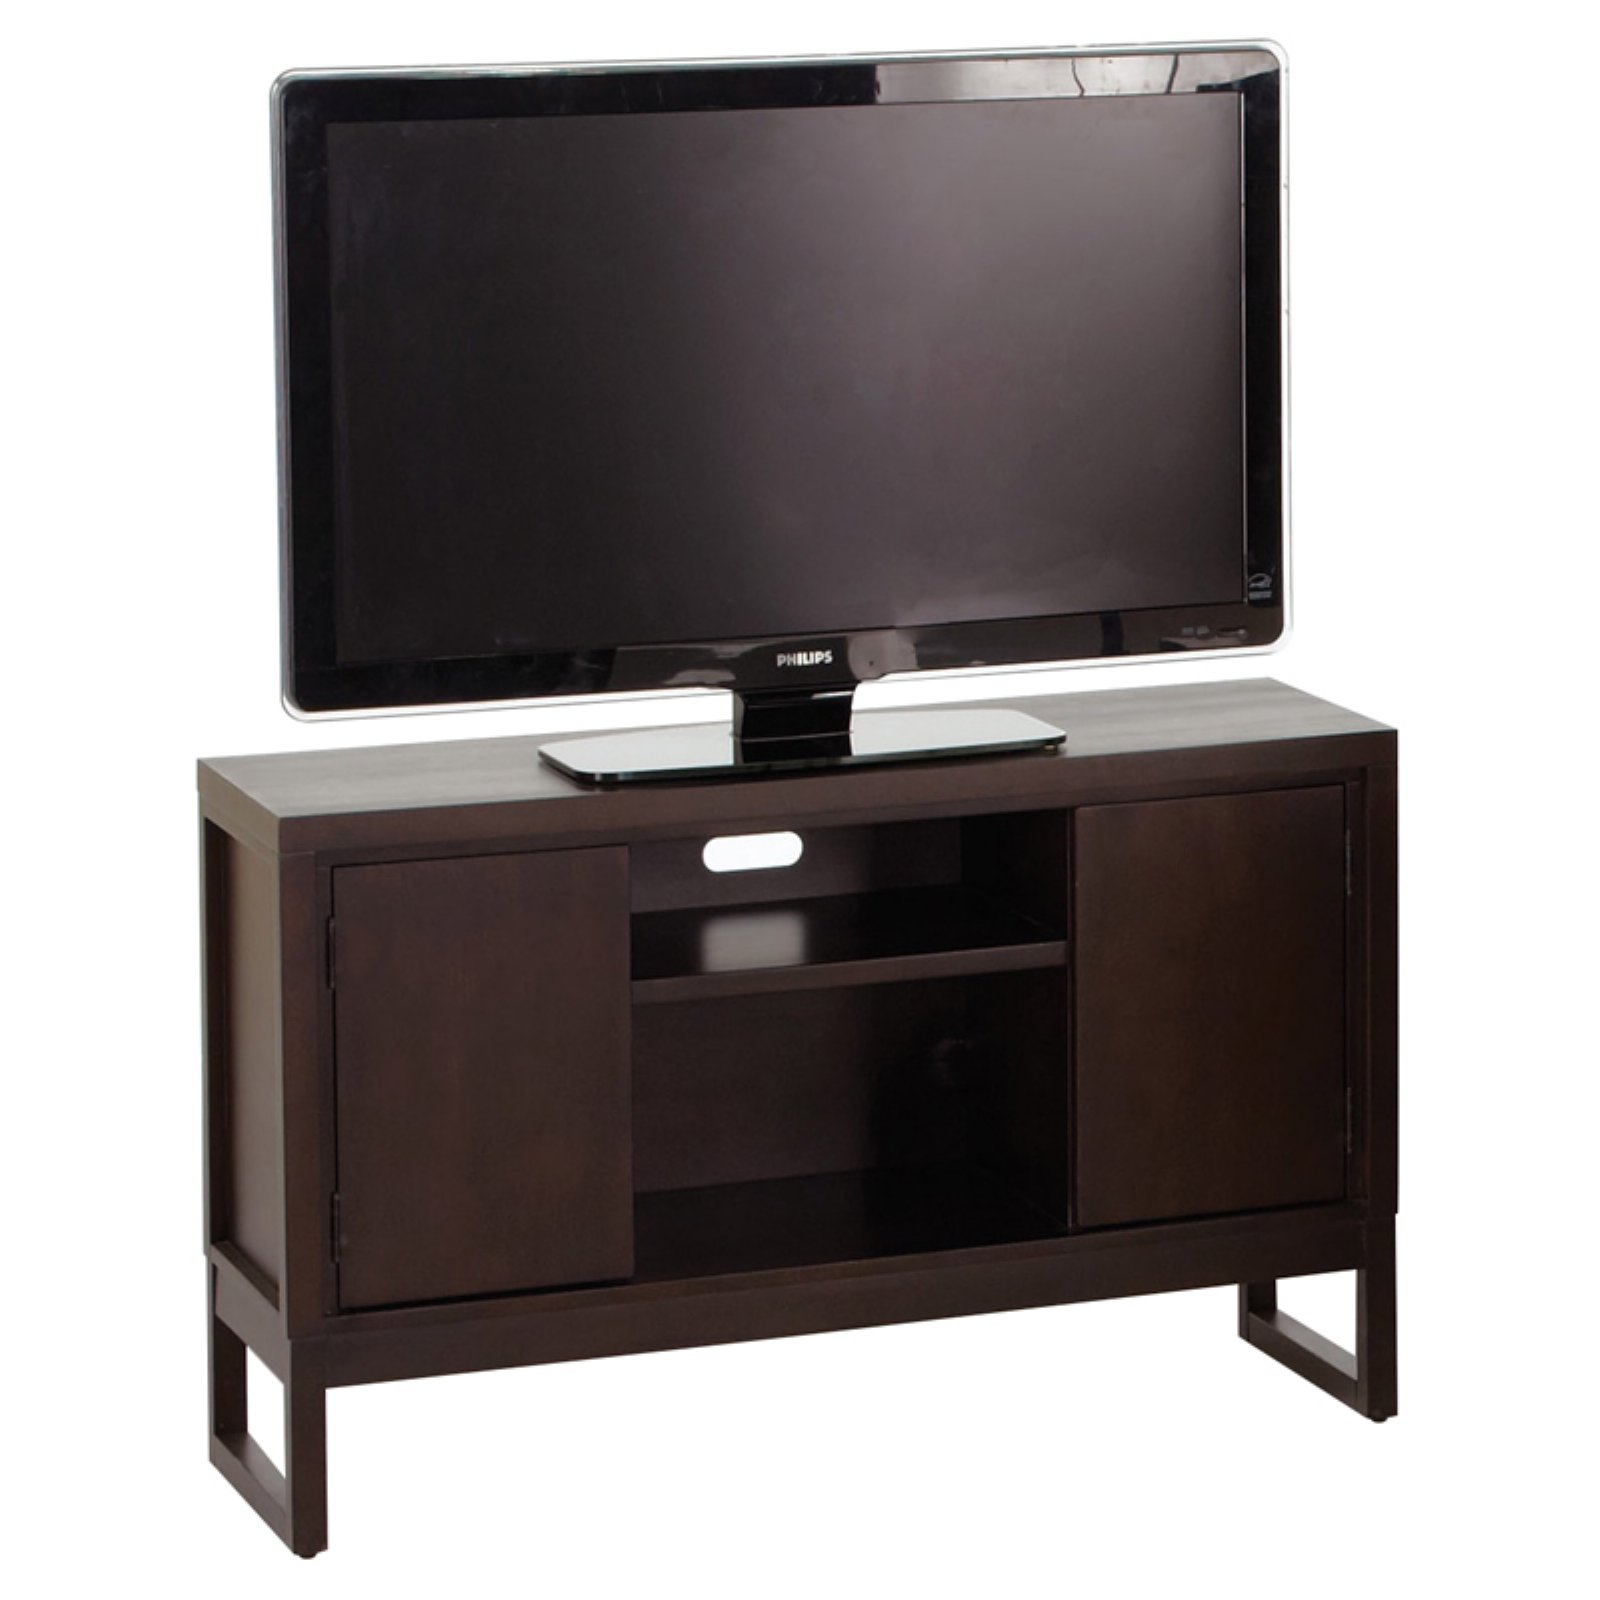 Progressive Furniture Athena TV Console - Dark Chocolate